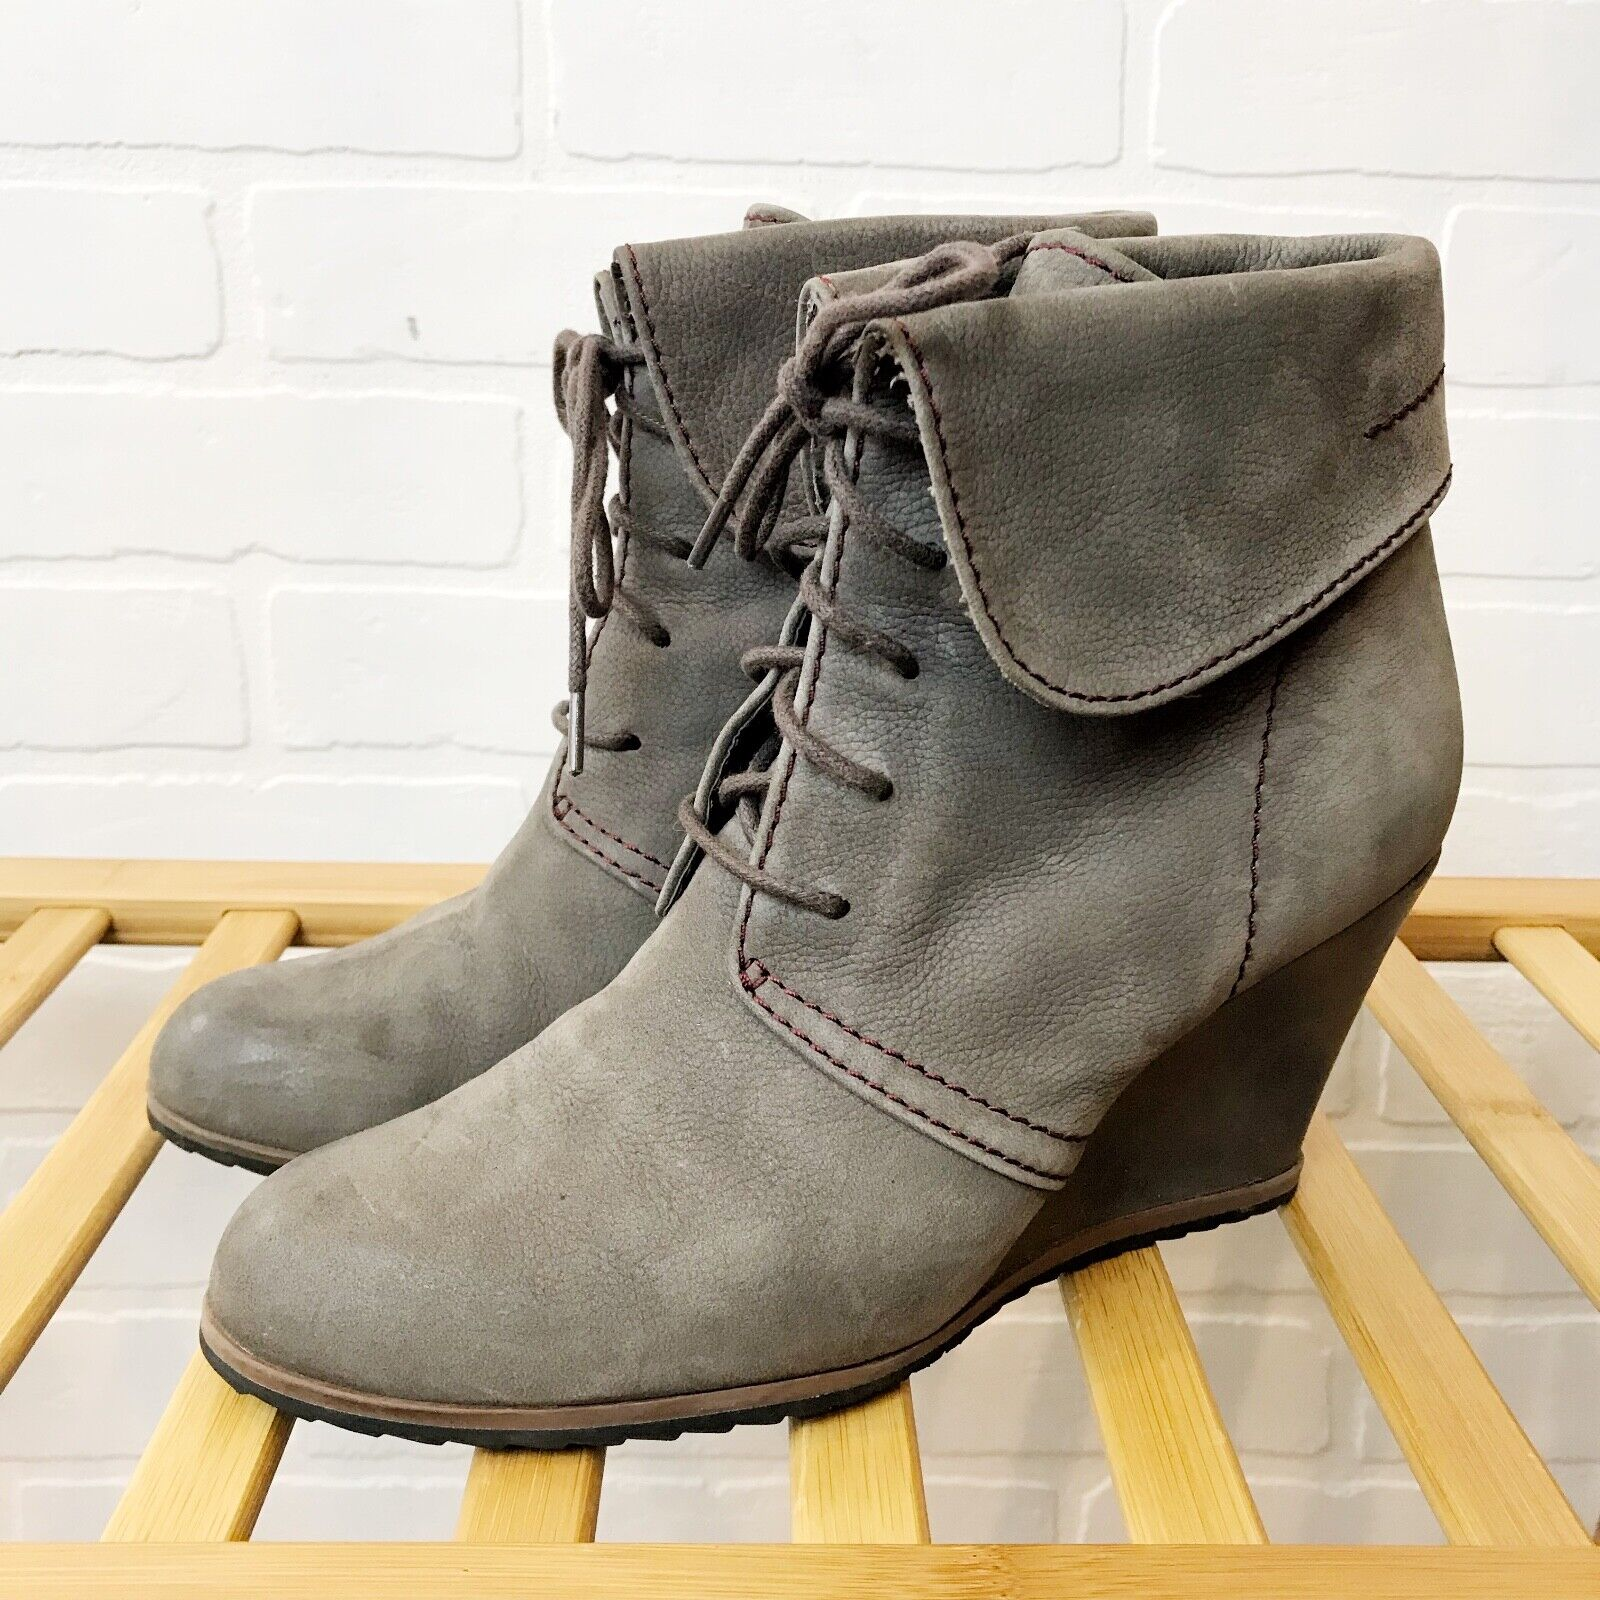 TESORI Oxford Wedge Ankle Bootie 8M Lace Up Fold Over Soft Leather Gray Taupe